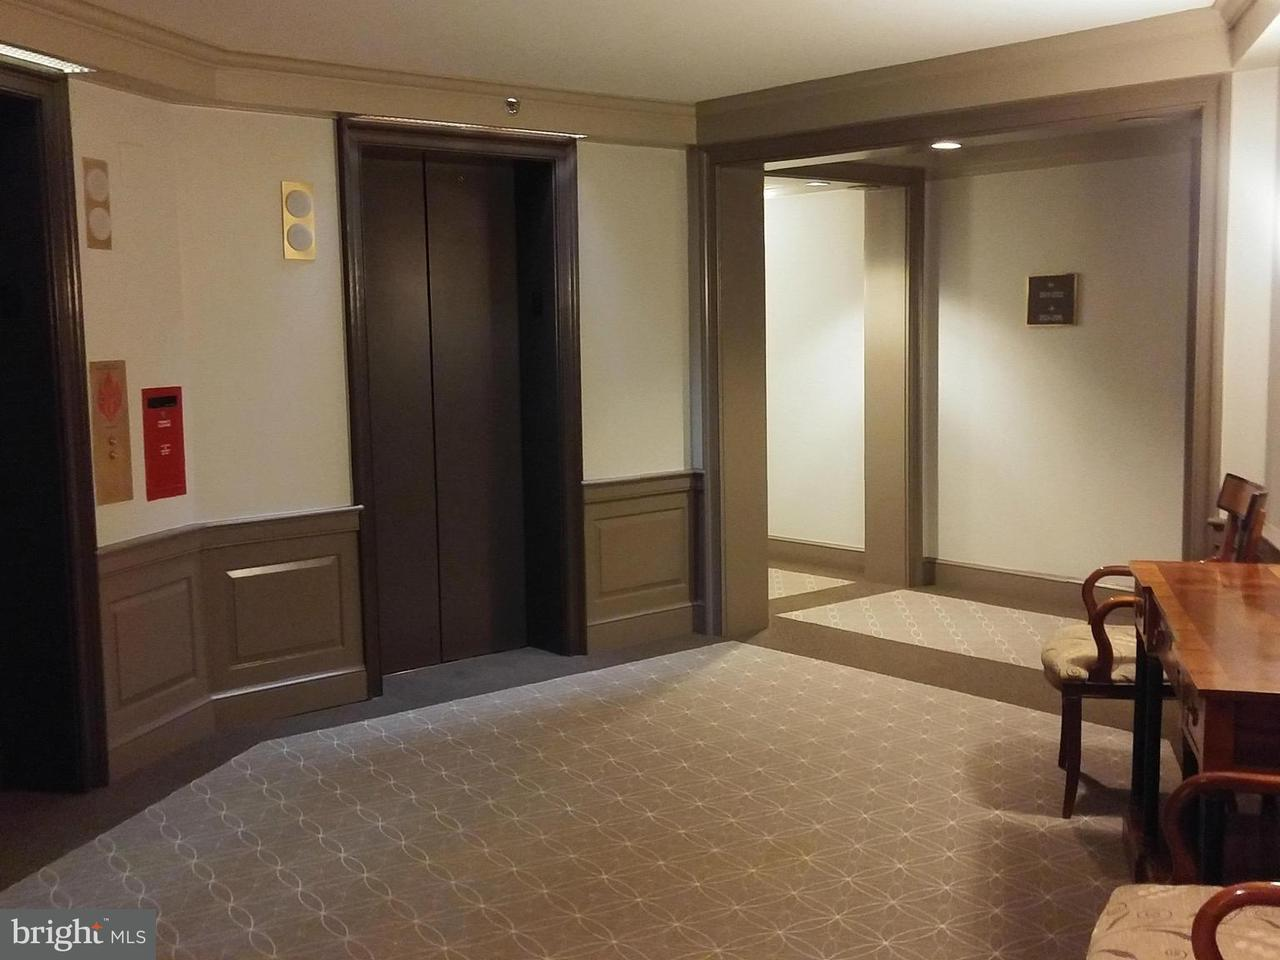 Additional photo for property listing at 601 PENNSYLVANIA AVE NW #207 601 PENNSYLVANIA AVE NW #207 Washington, District Of Columbia 20004 Verenigde Staten